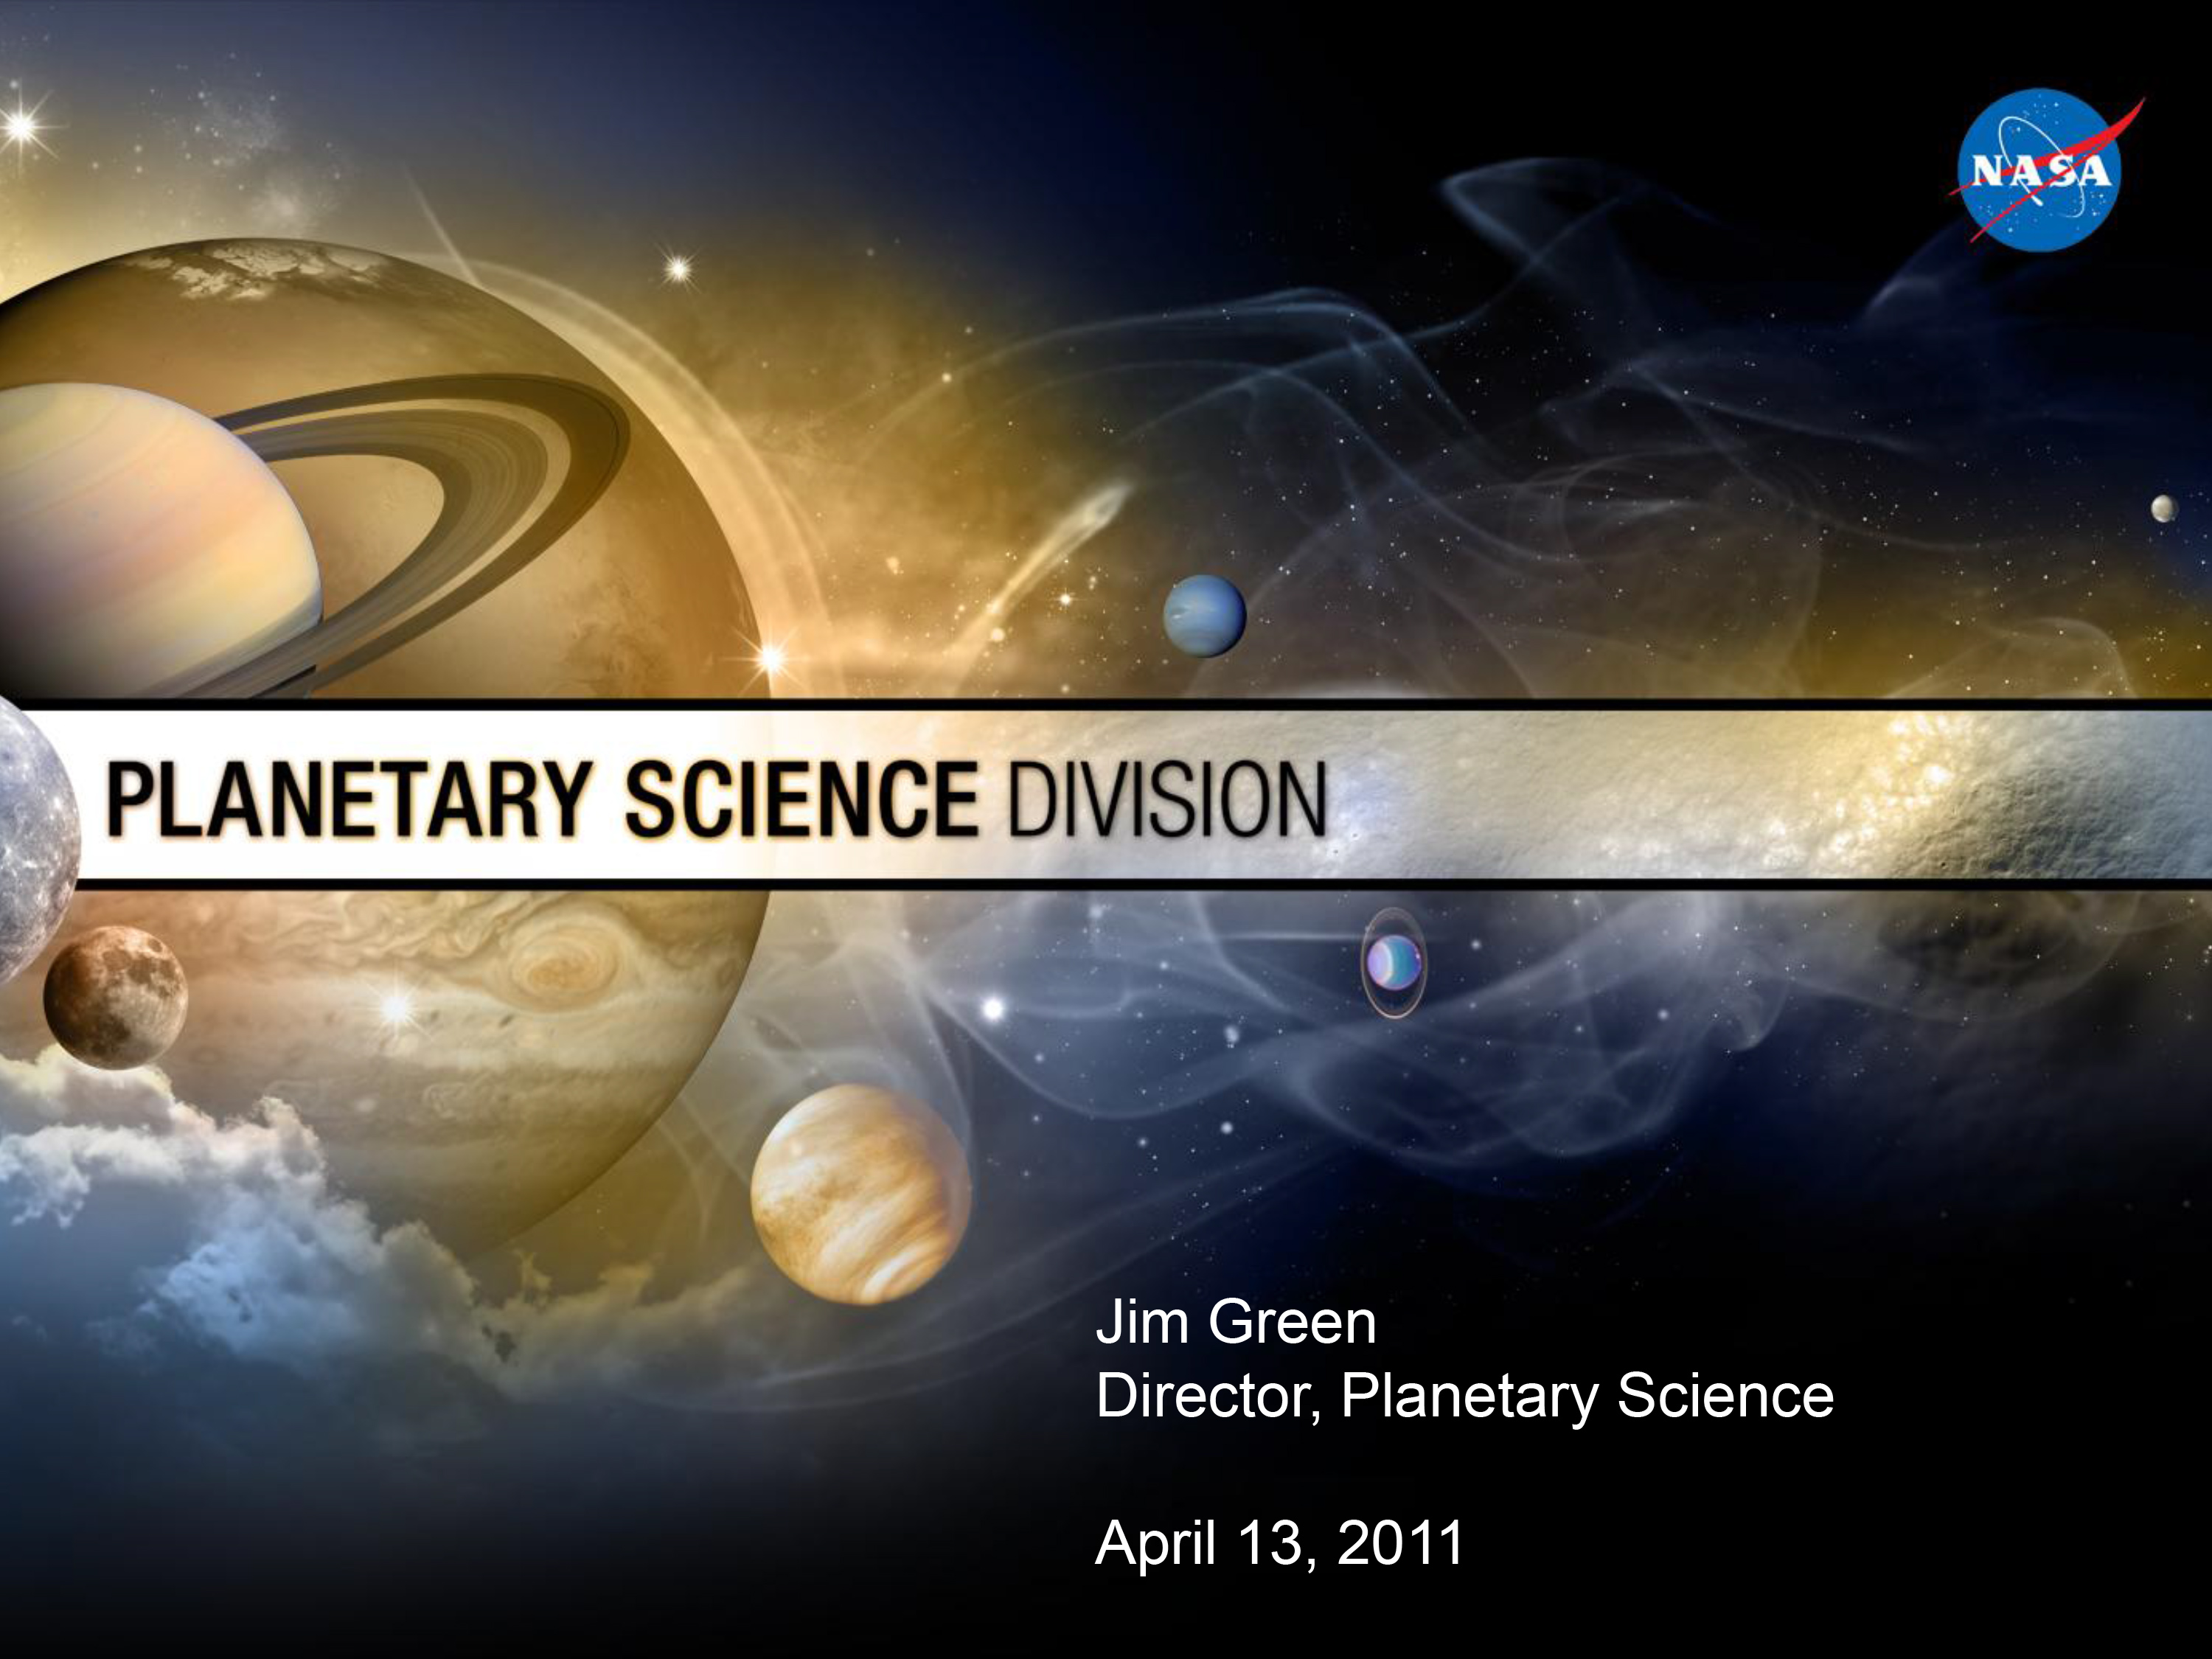 Presentation by Planetary Science Division Director Dr. Jim Green in Chicago.